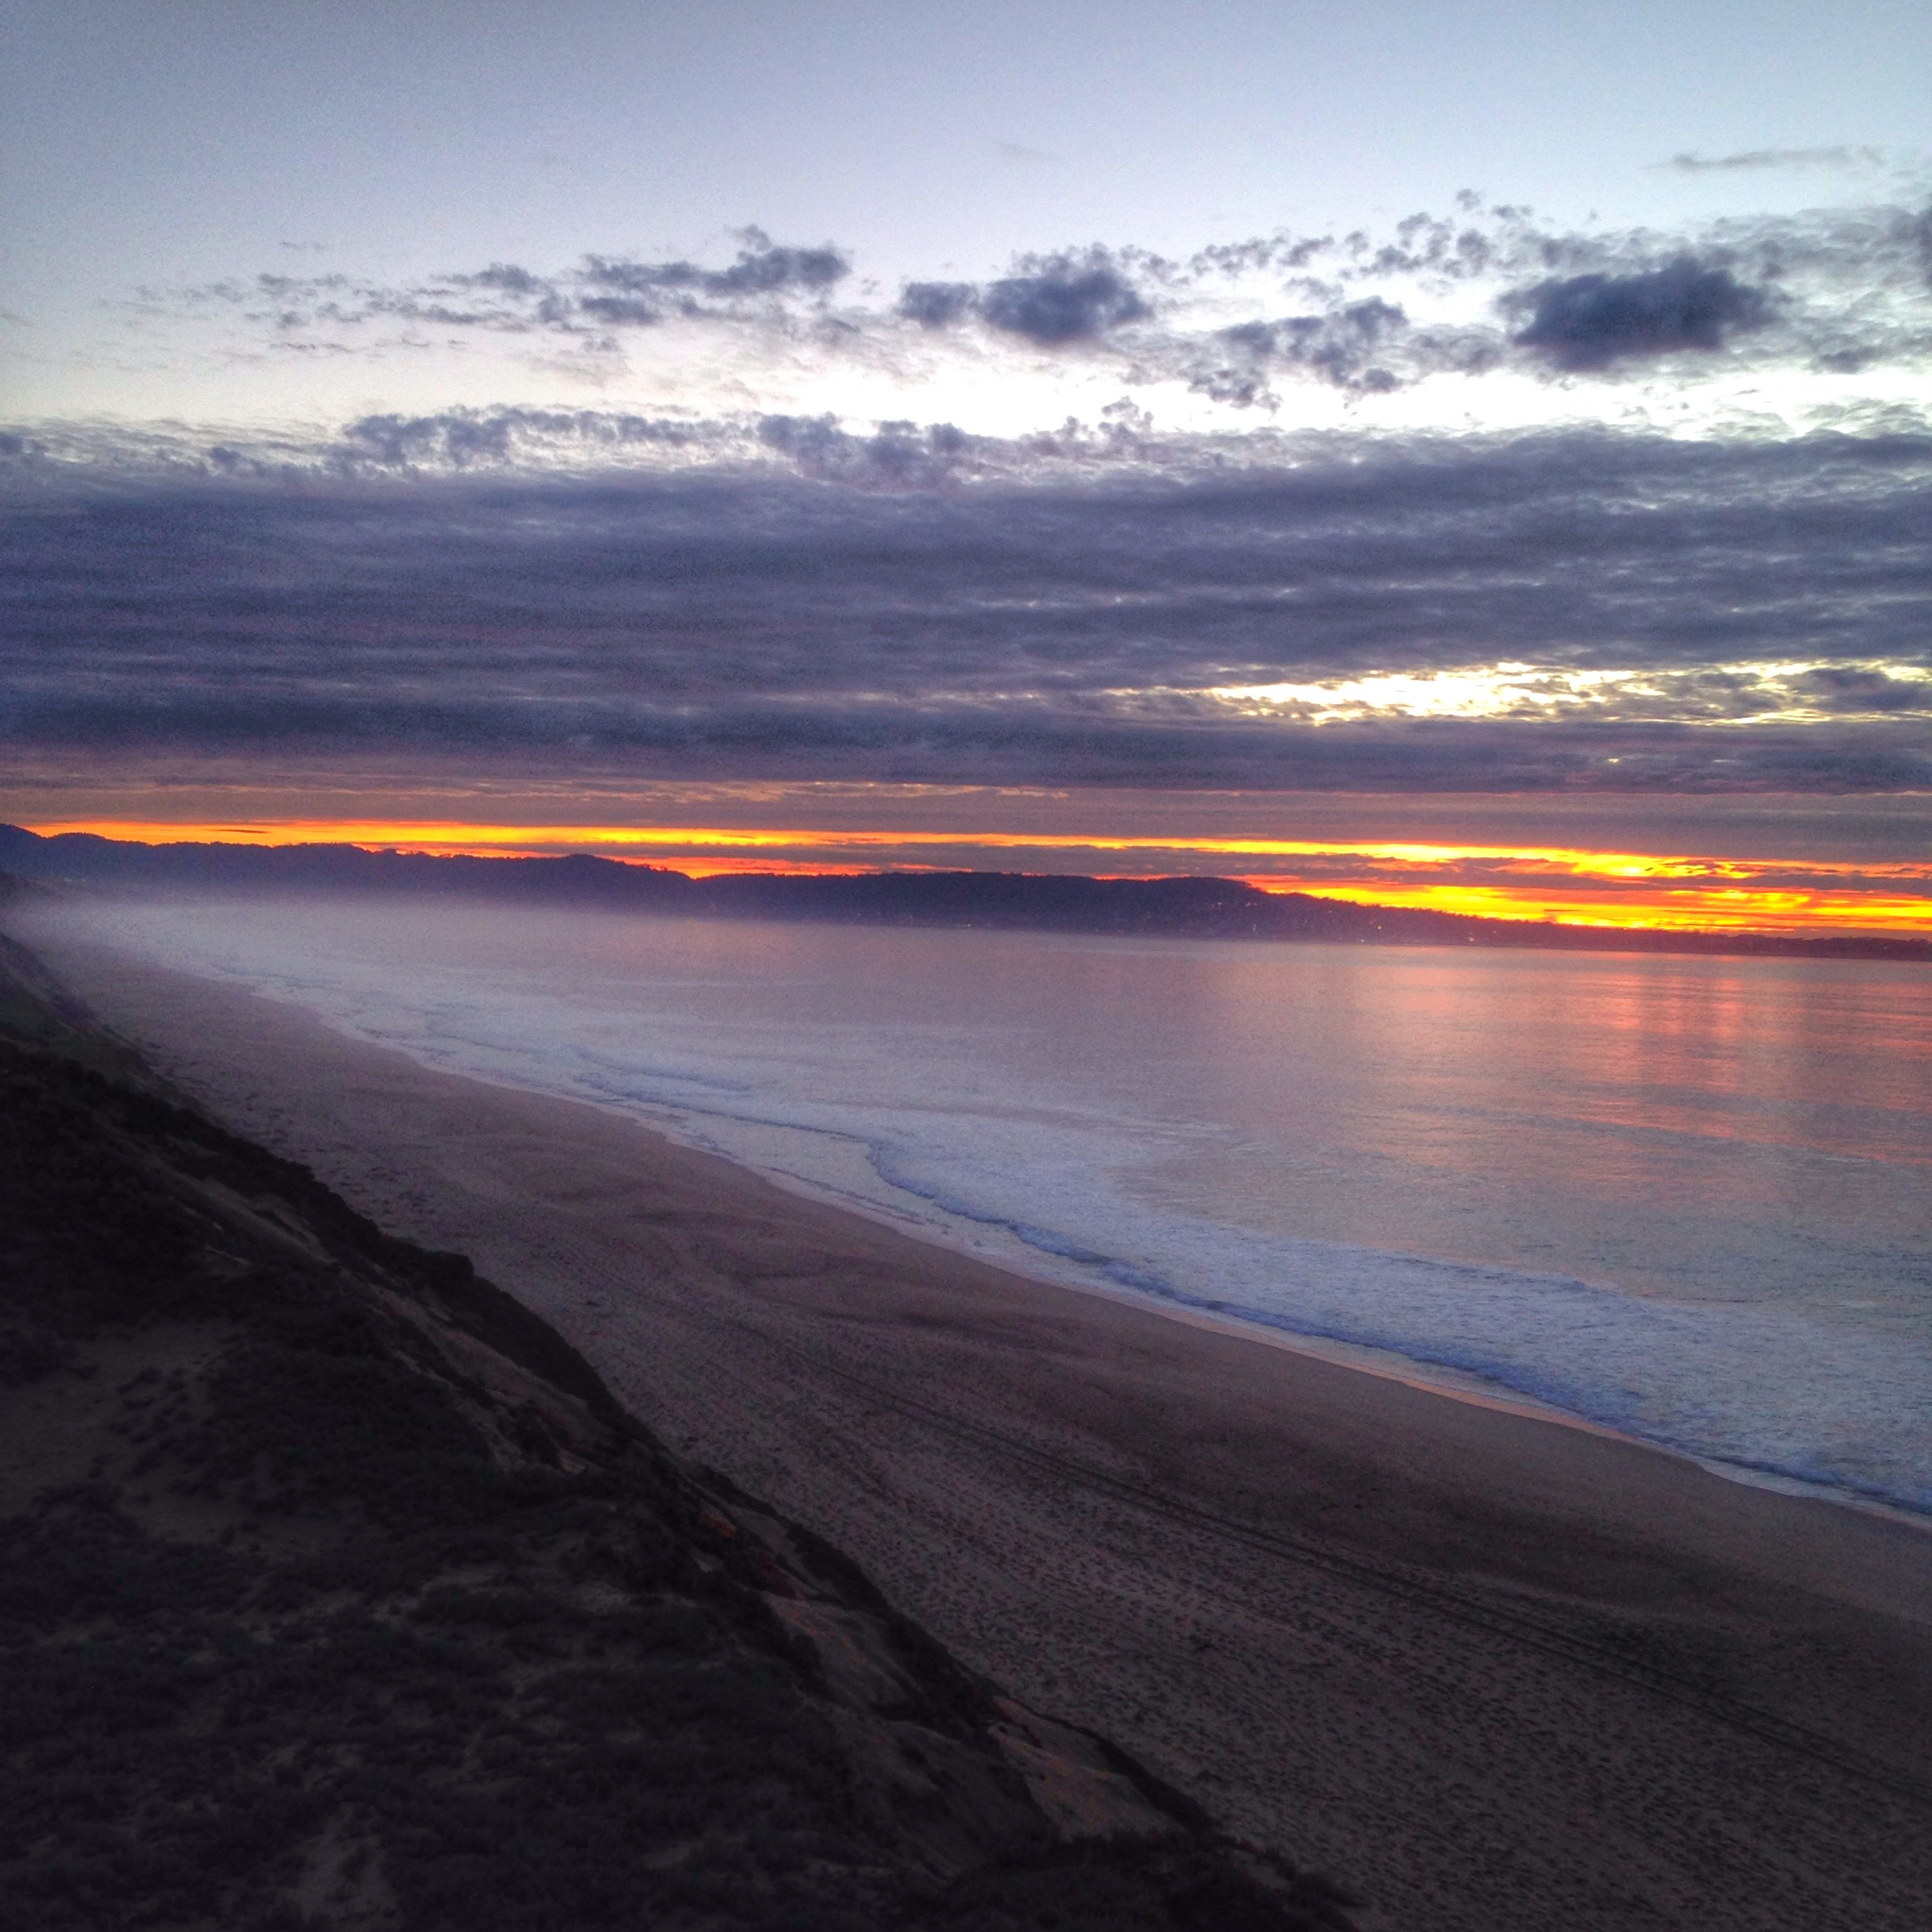 Fort Ord Dunes State Park at Sunset